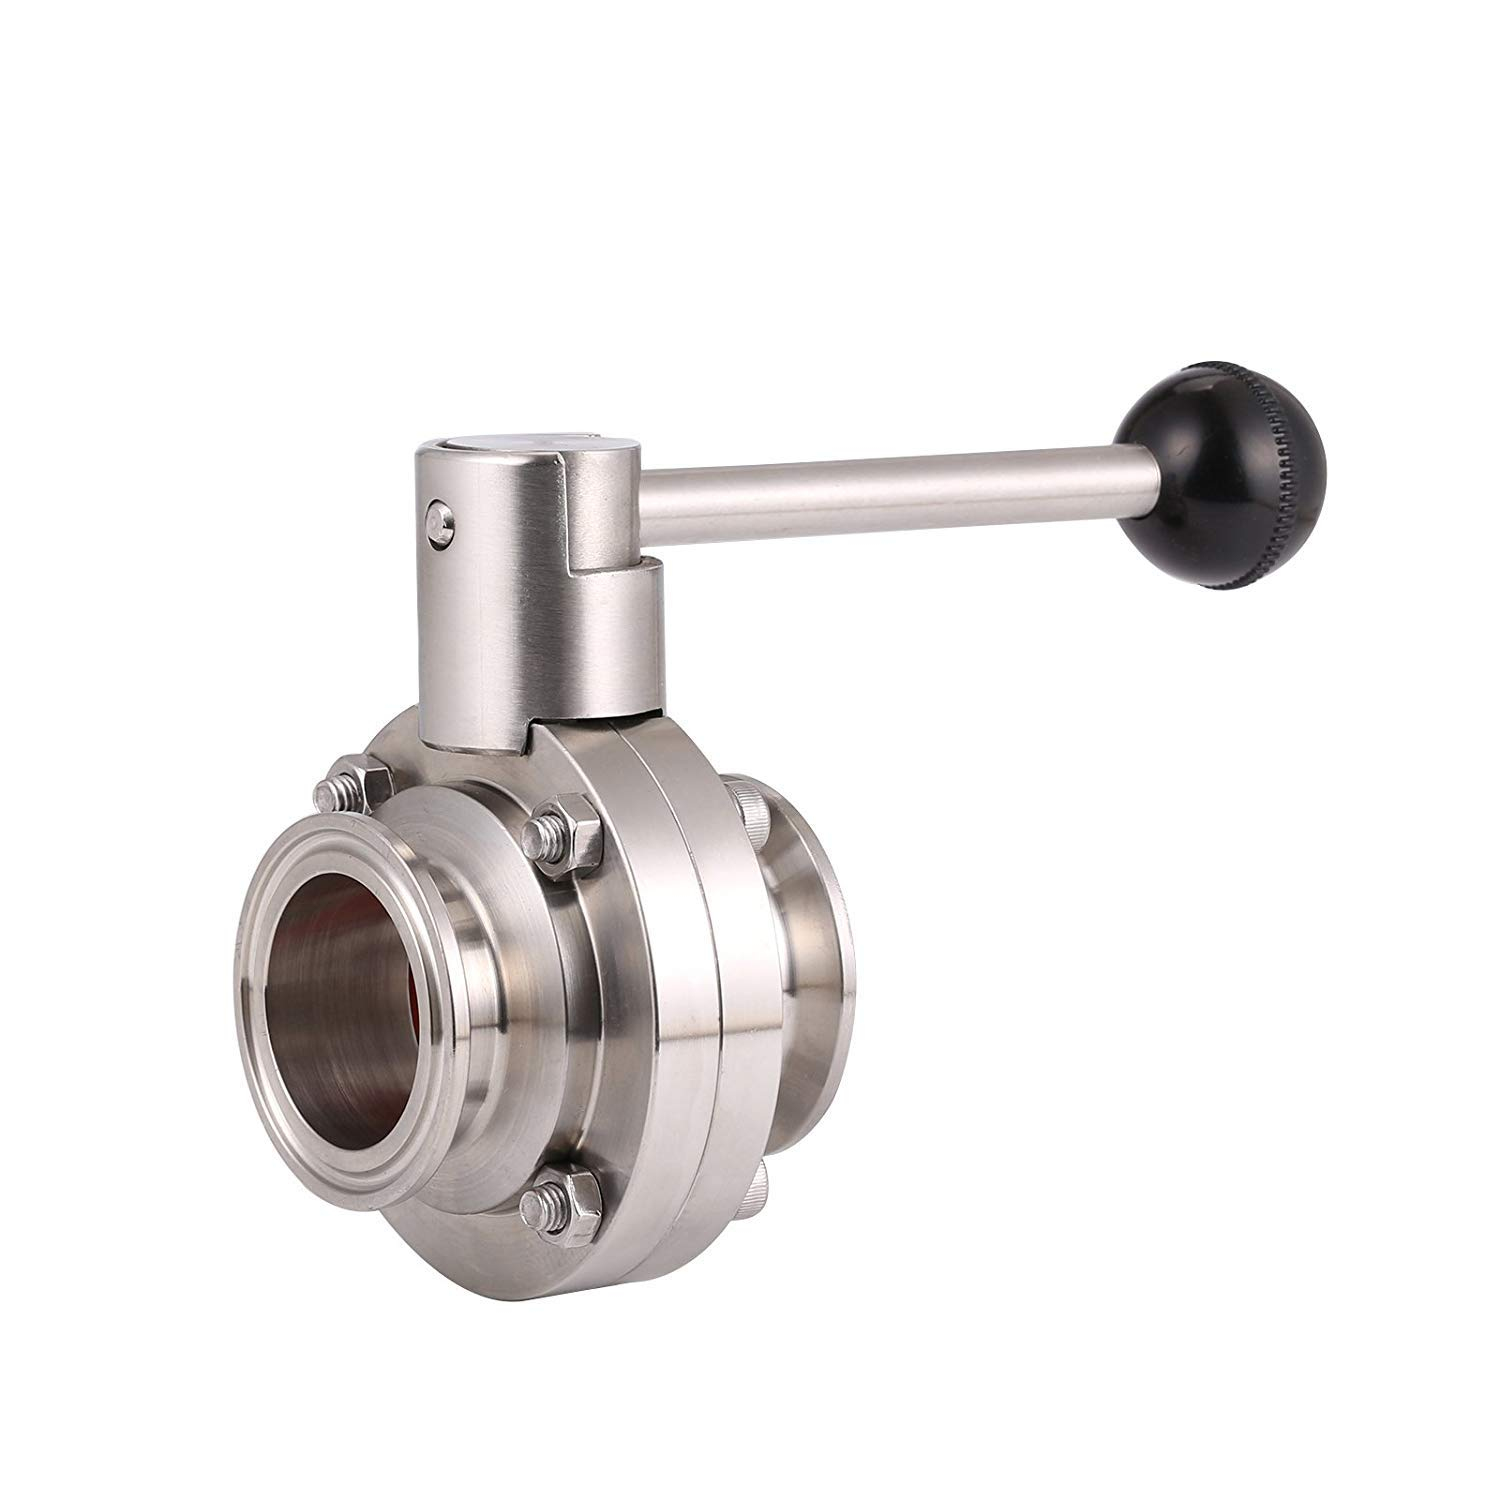 BOKYWOX Sanitary Butterfly Valve with Pull Handle Stainless Steel 316 Tri Clamp Clover (1